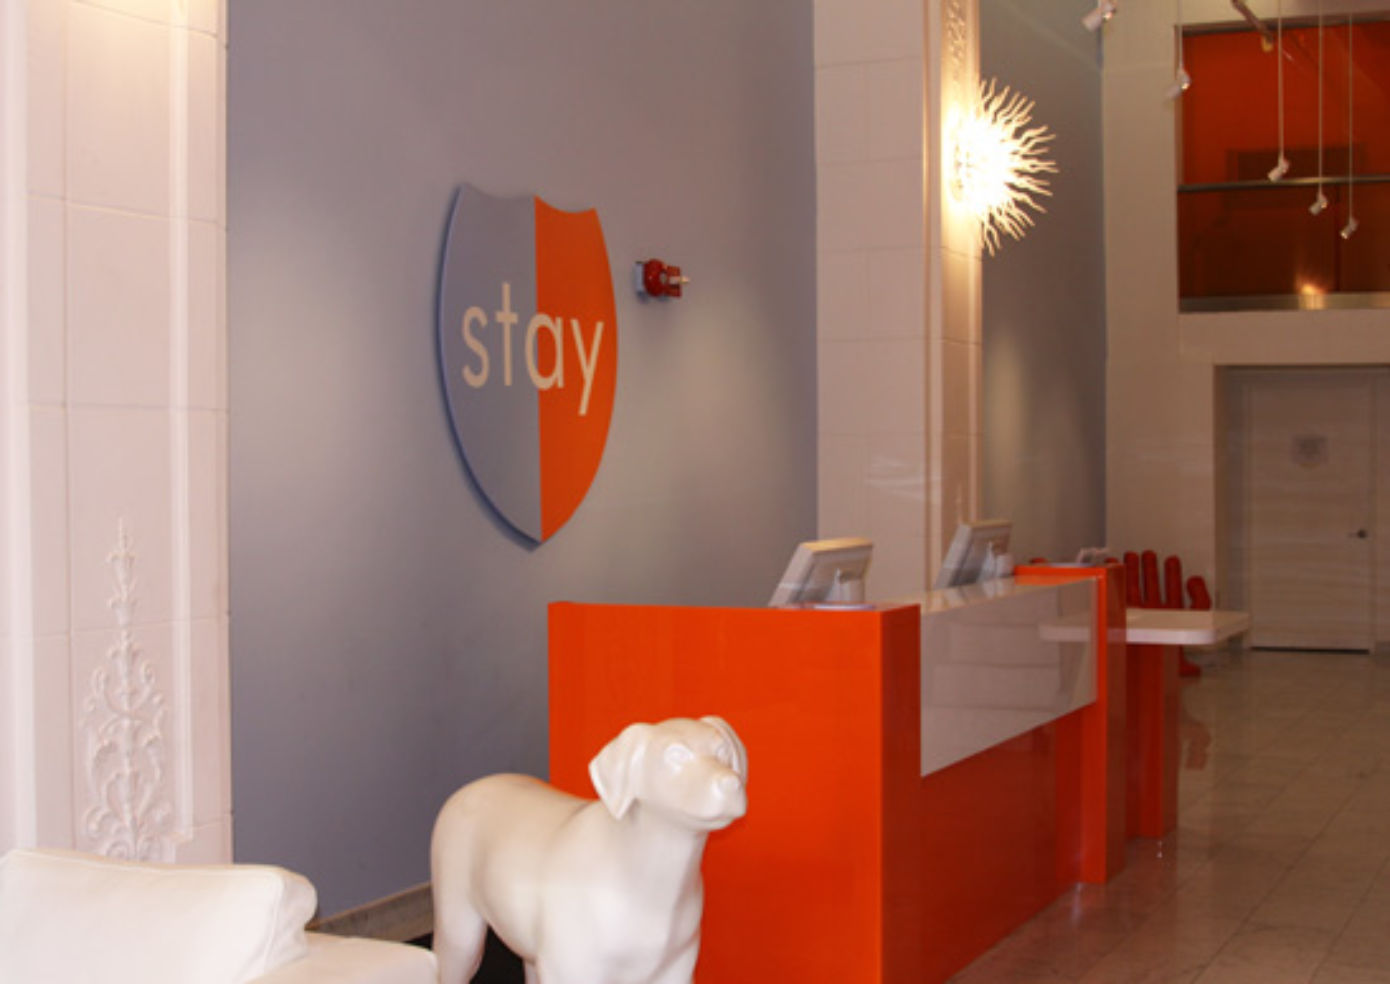 Stay, a hostel in Los Angeles